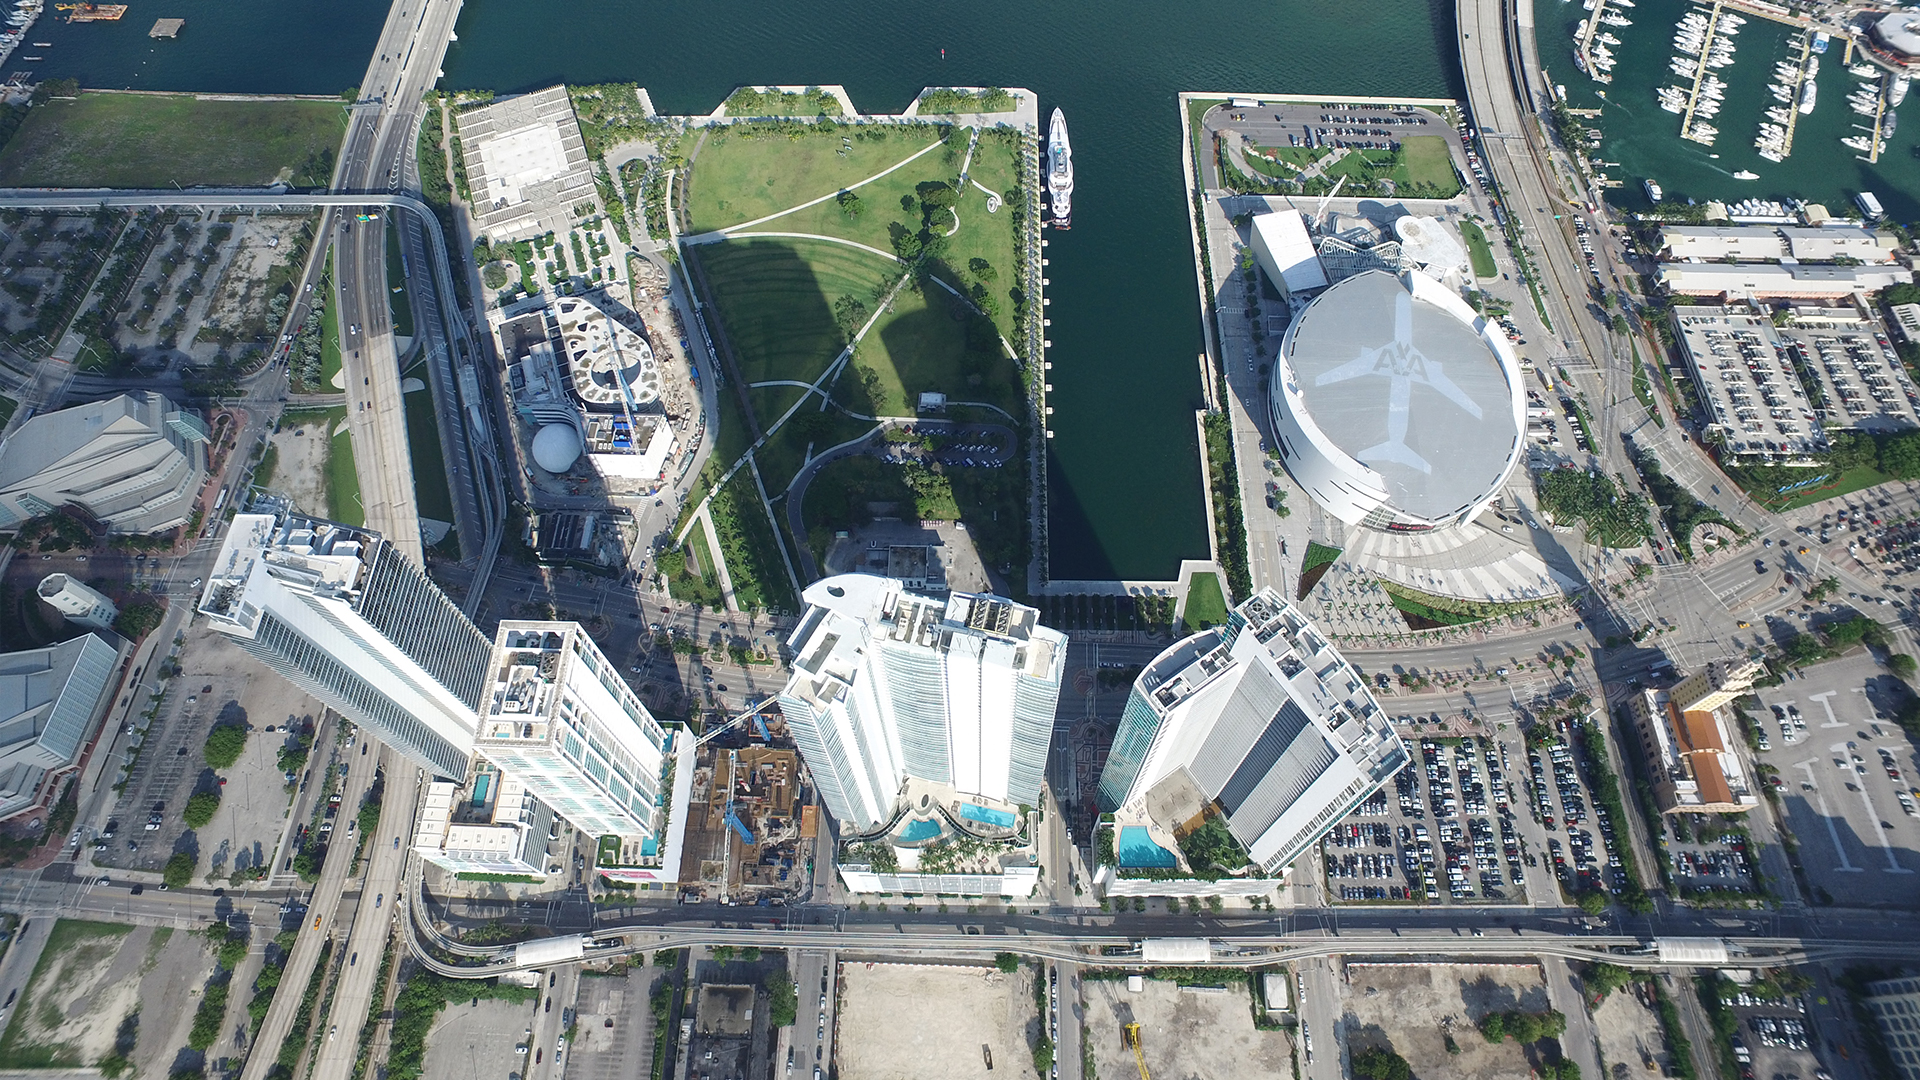 REAL ESTATE AERIAL VIEWS: MIAMI WORLDCENTER DOWNTOWN MIAMI